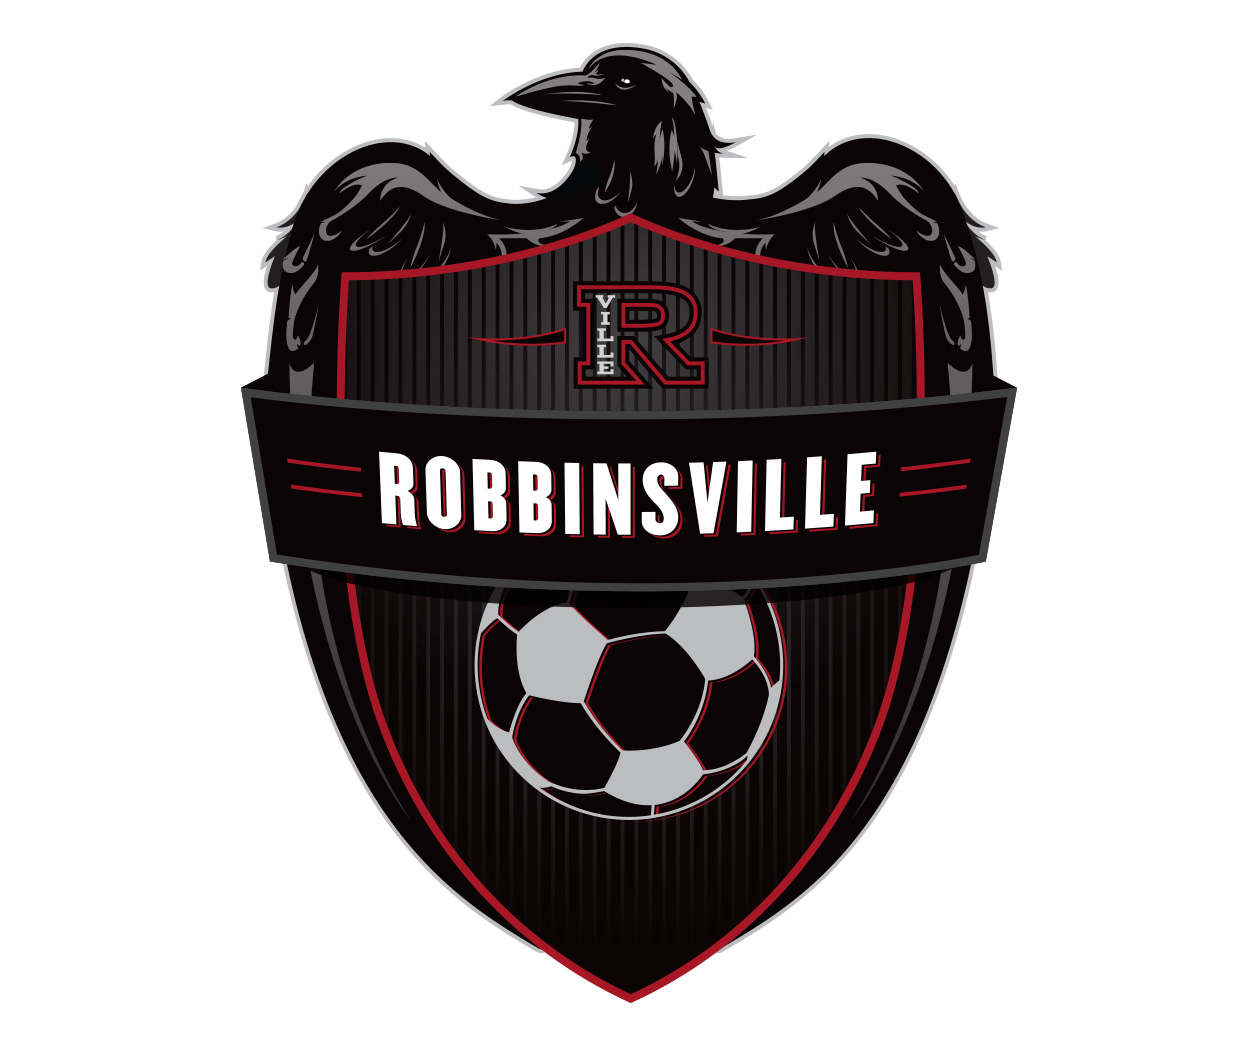 custom soccer logo design for robbinsville soccer by jordan fretz design